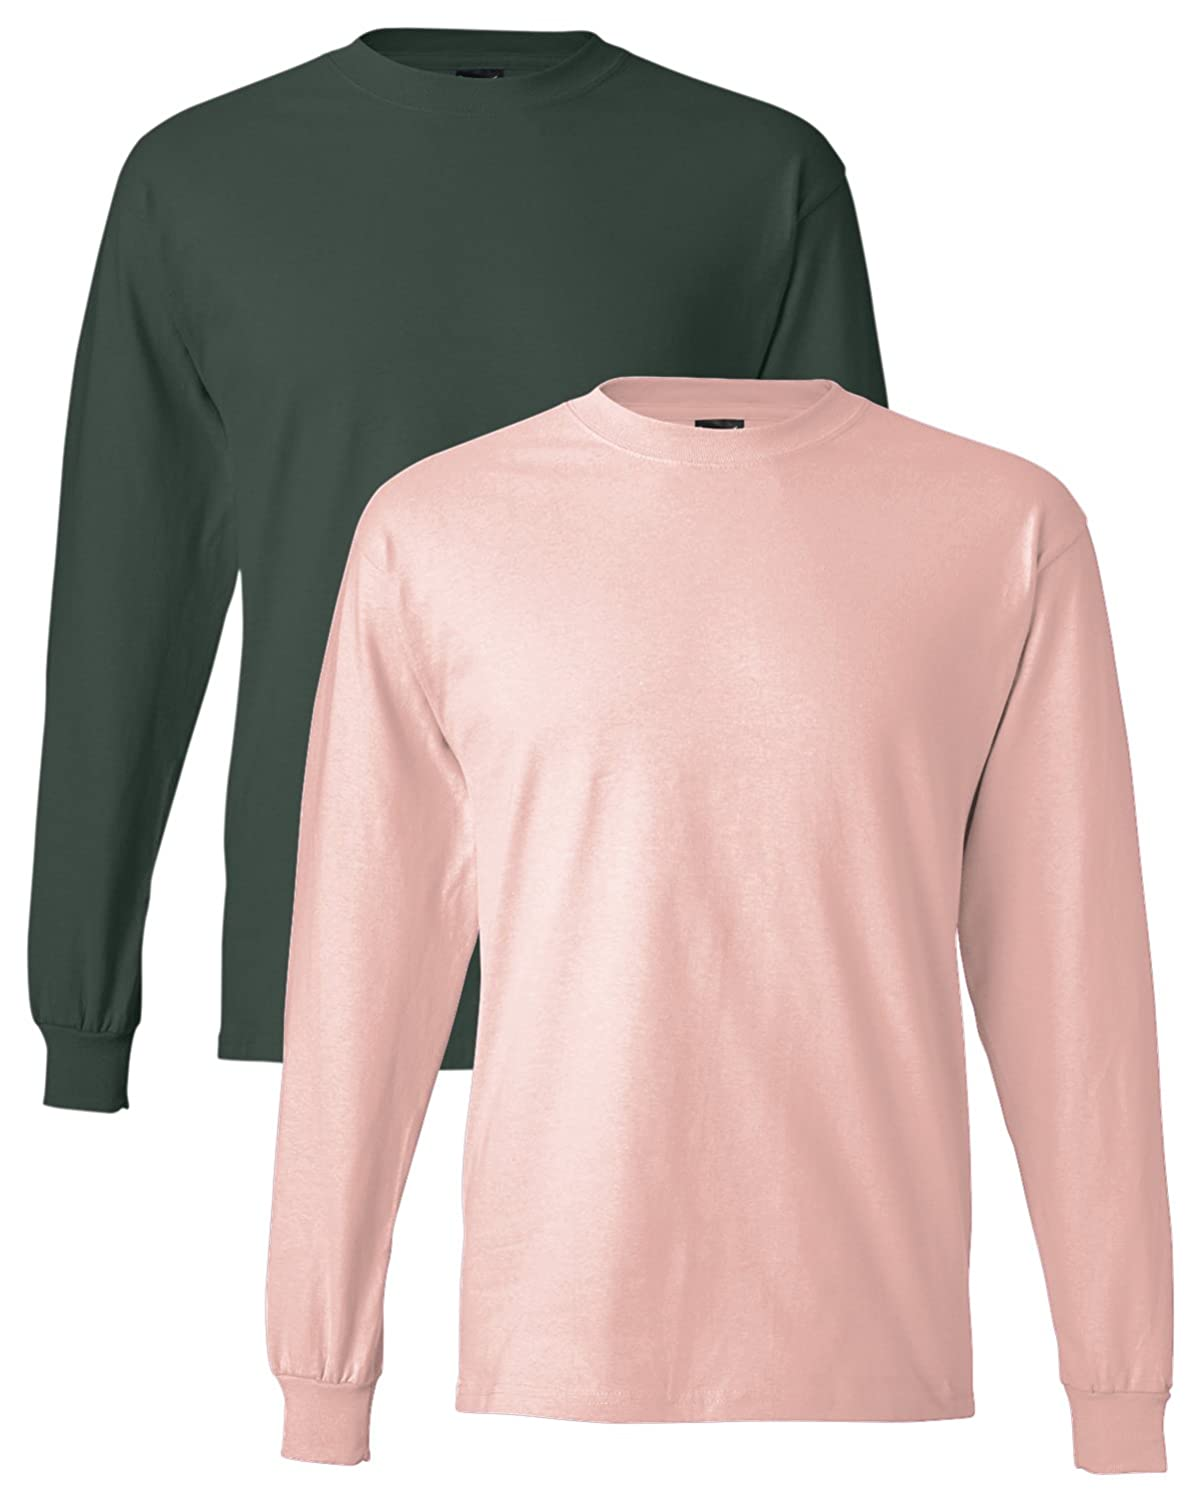 Hanes Men's Long-Sleeve Beefy-T Shirt (Pack of 2) at Amazon Men's ...